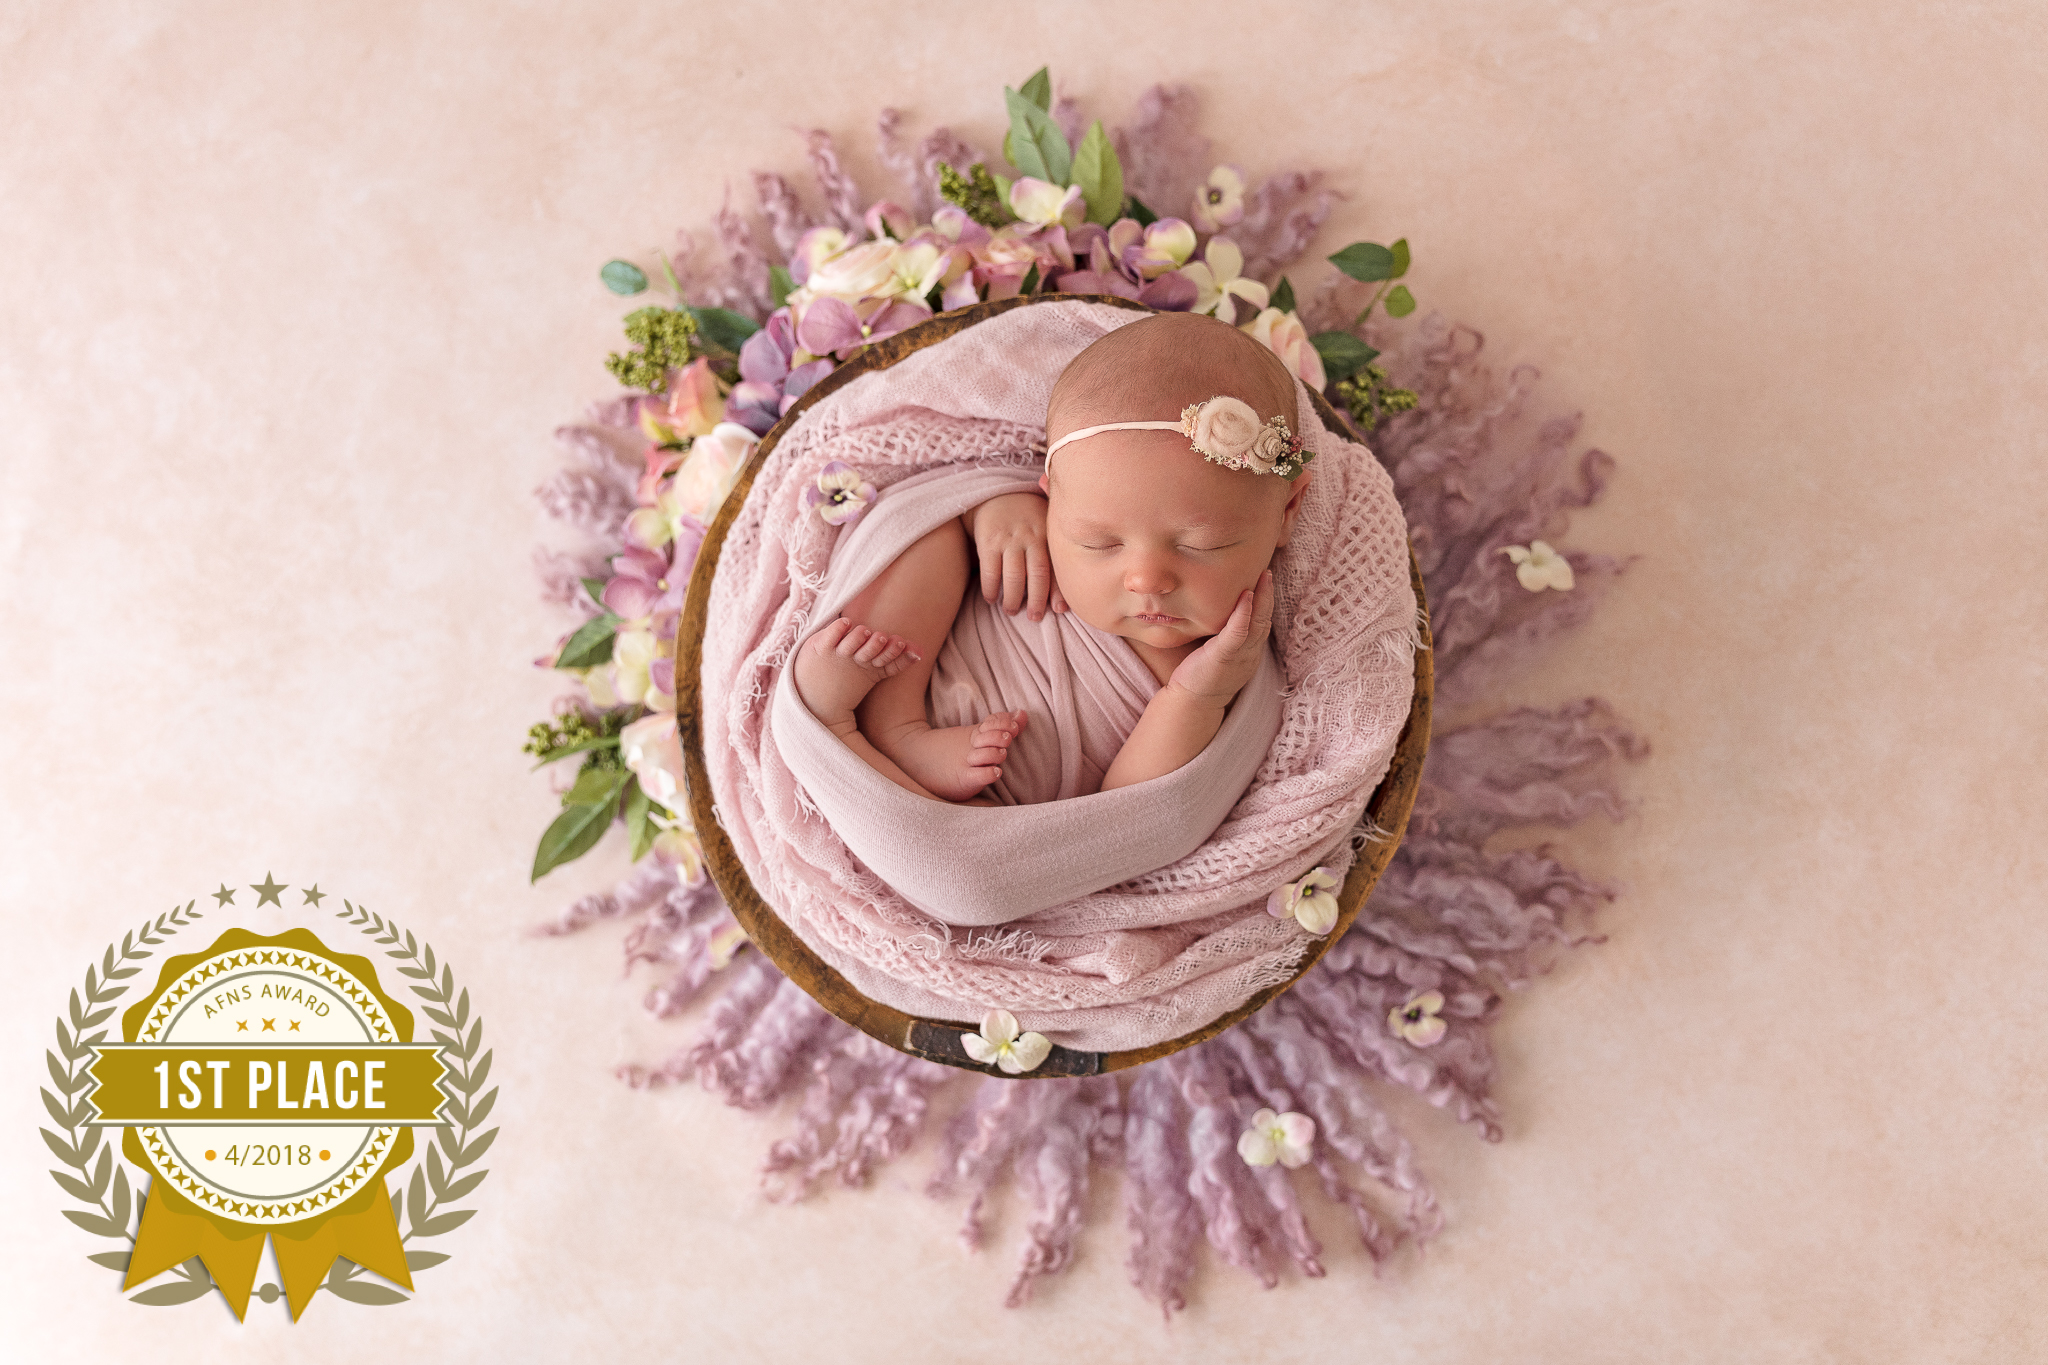 Olivia | Award Winning Newborn Photographer Adelaide